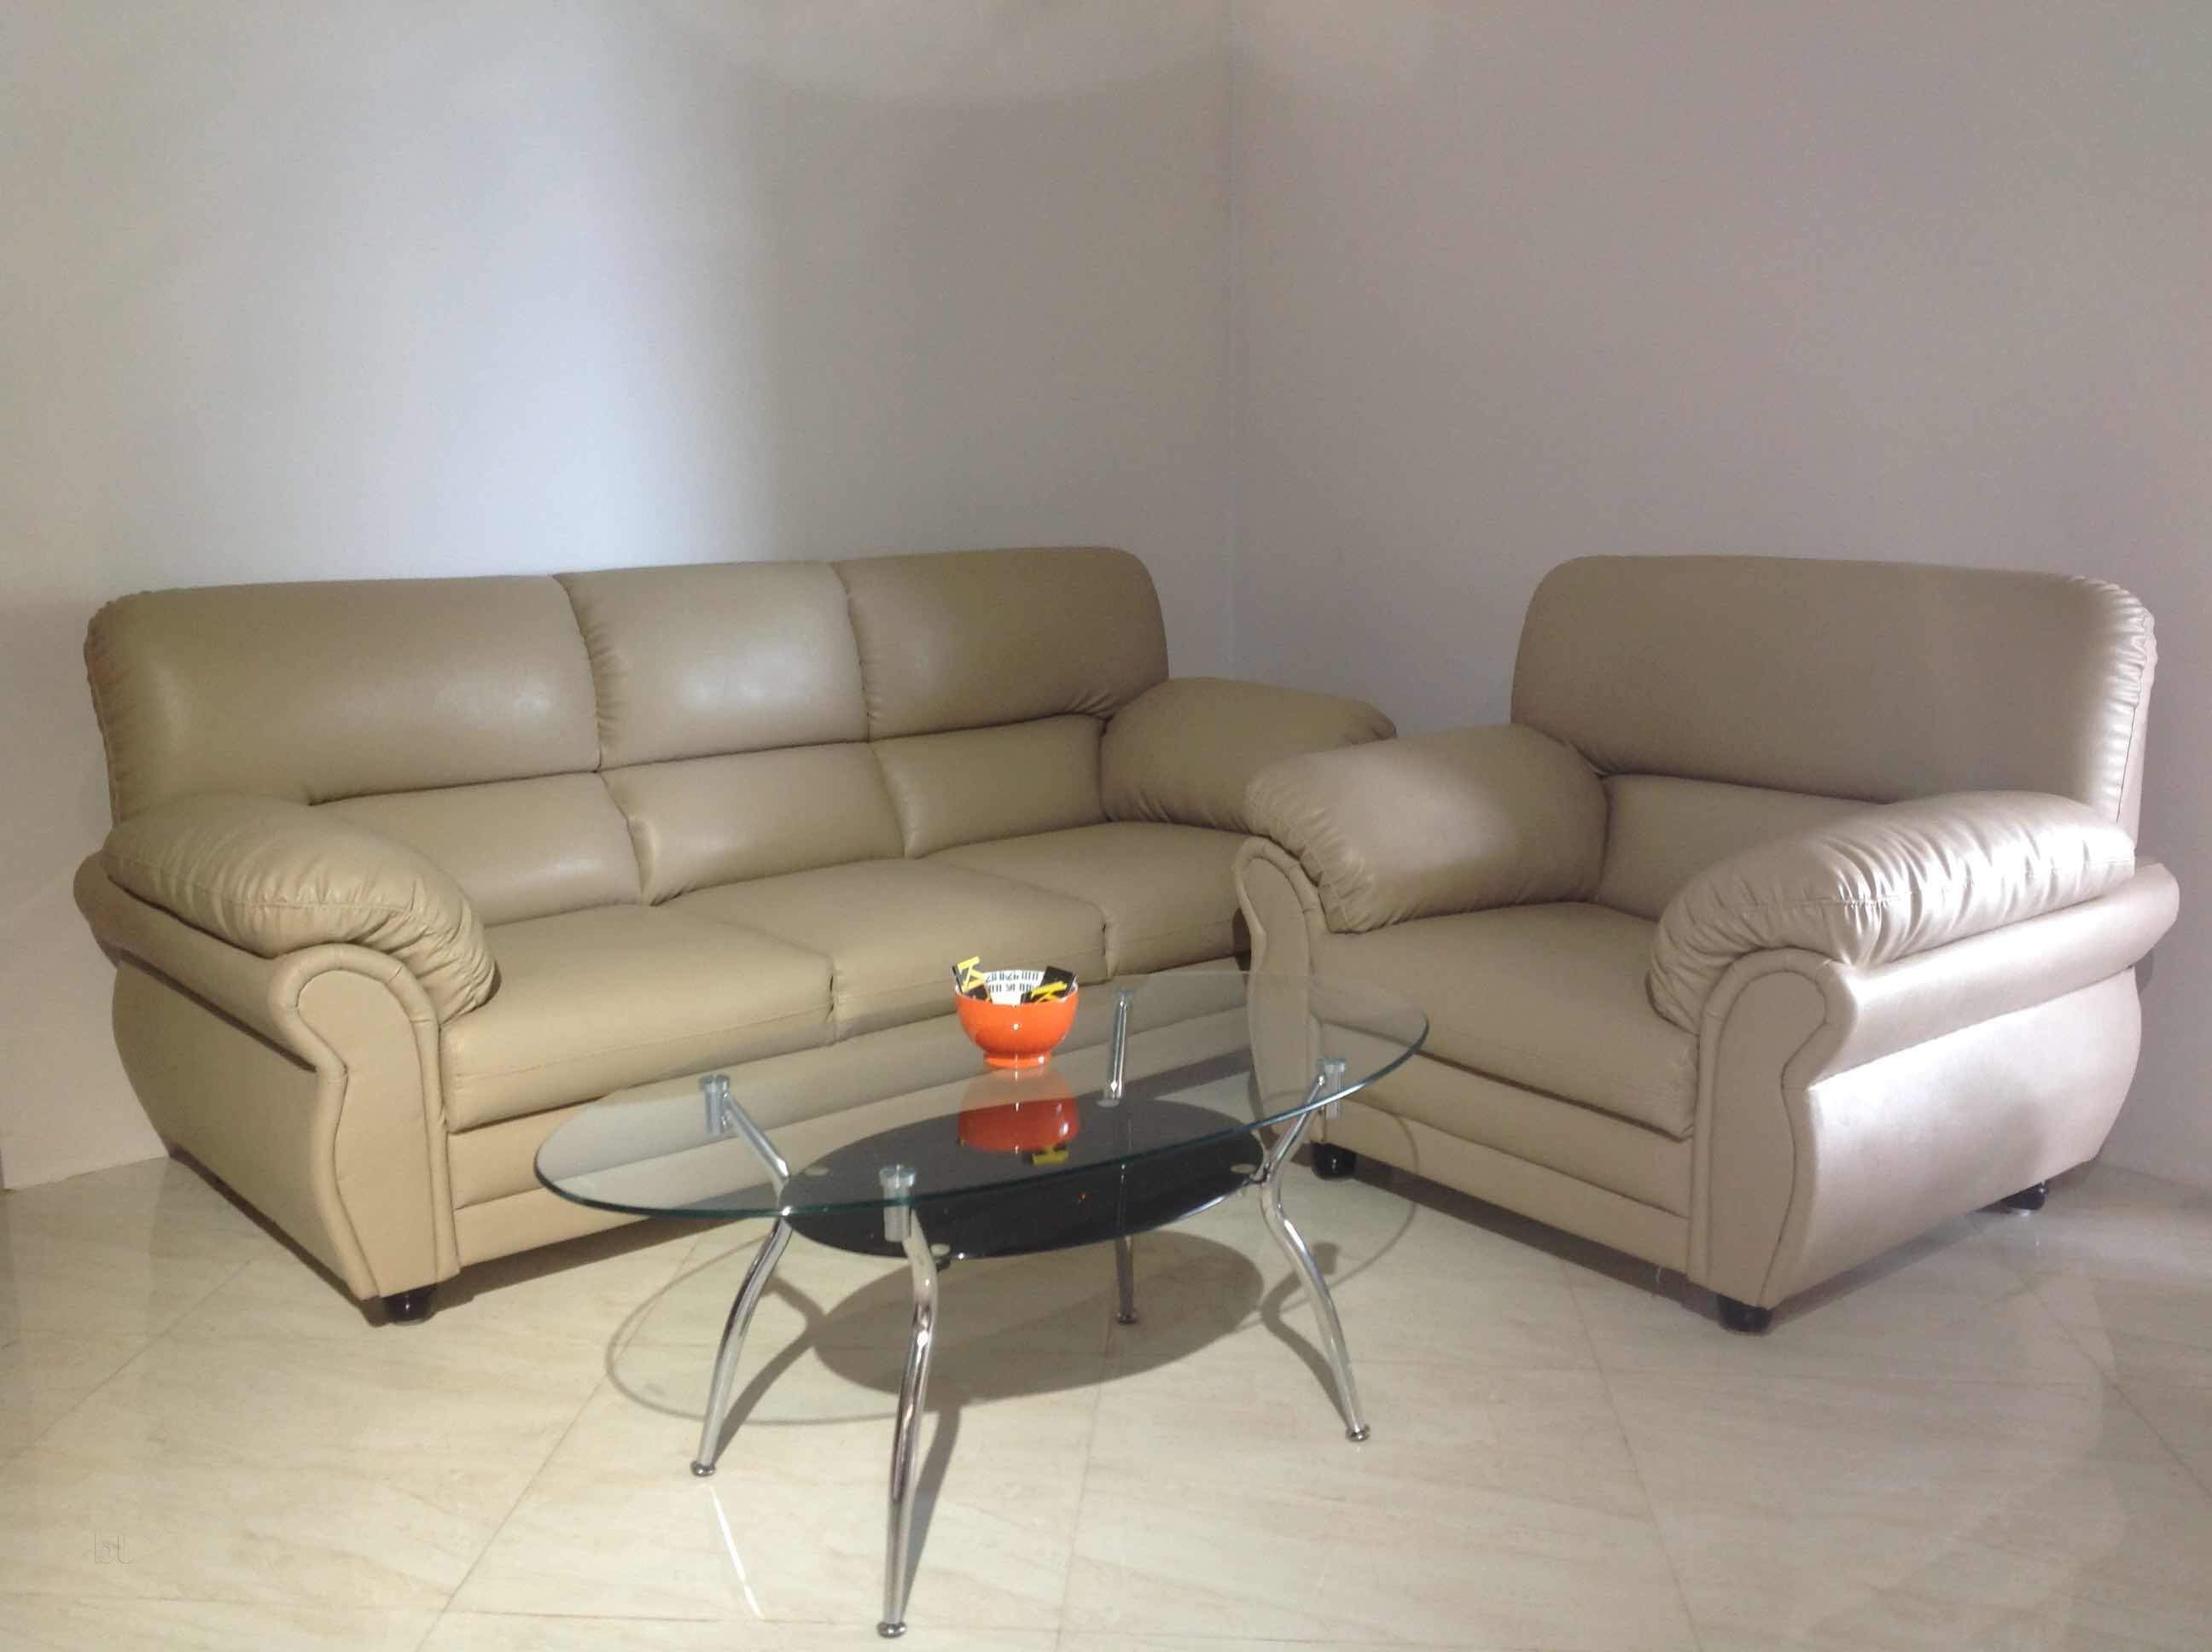 Newest Kiara Living, Vijaynagar 1St Stage – Furniture Dealers In Mysore With Regard To Kiara Sofa Chairs (Gallery 11 of 20)